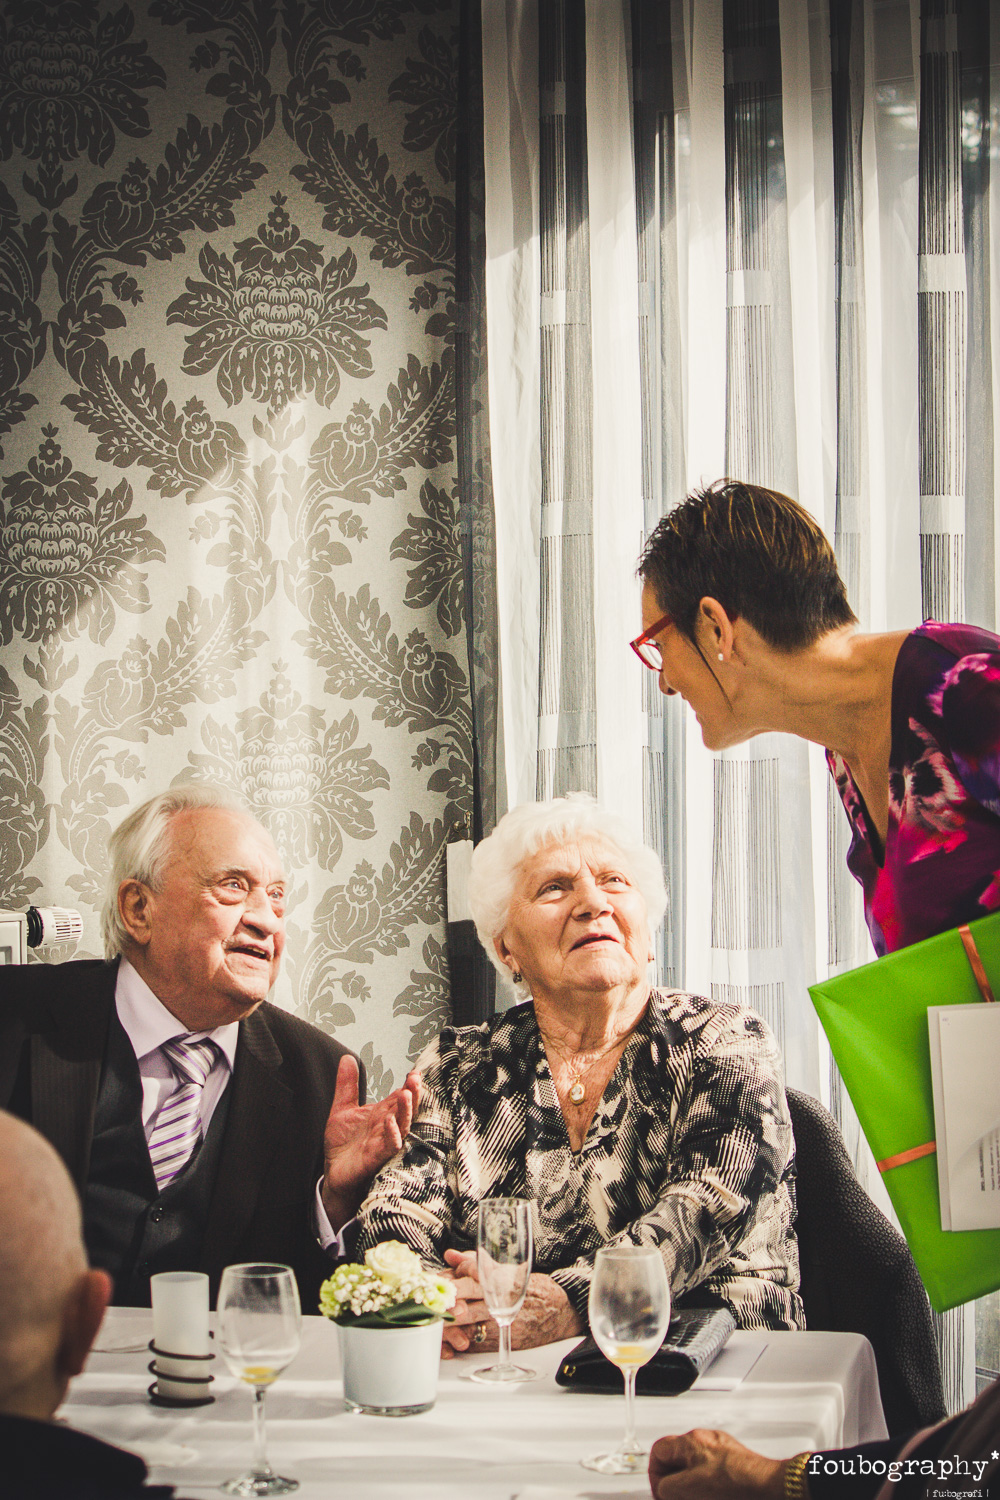 Councilwoman Geerts bringing a gift from the city Sint-Niklaas in honour of Simone & Emiel Foubert's 65th wedding anniversary   @Nieuwkerken-Waas (BE) - Family Photography - 2014_